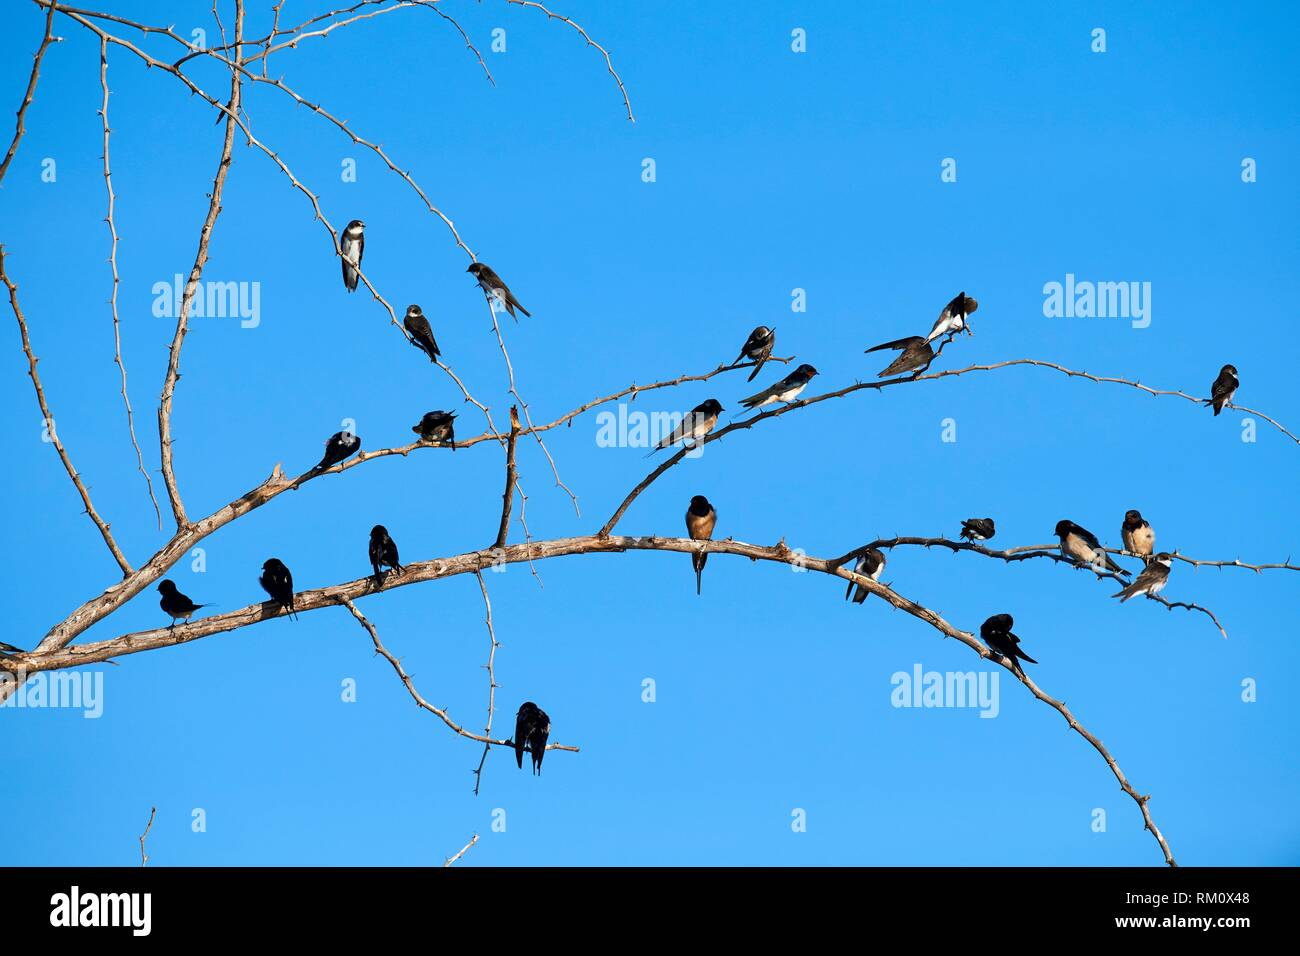 Barn swallow (Hirundo rustica) perched on branch. Baringo lake. Kenya, Africa. - Stock Image